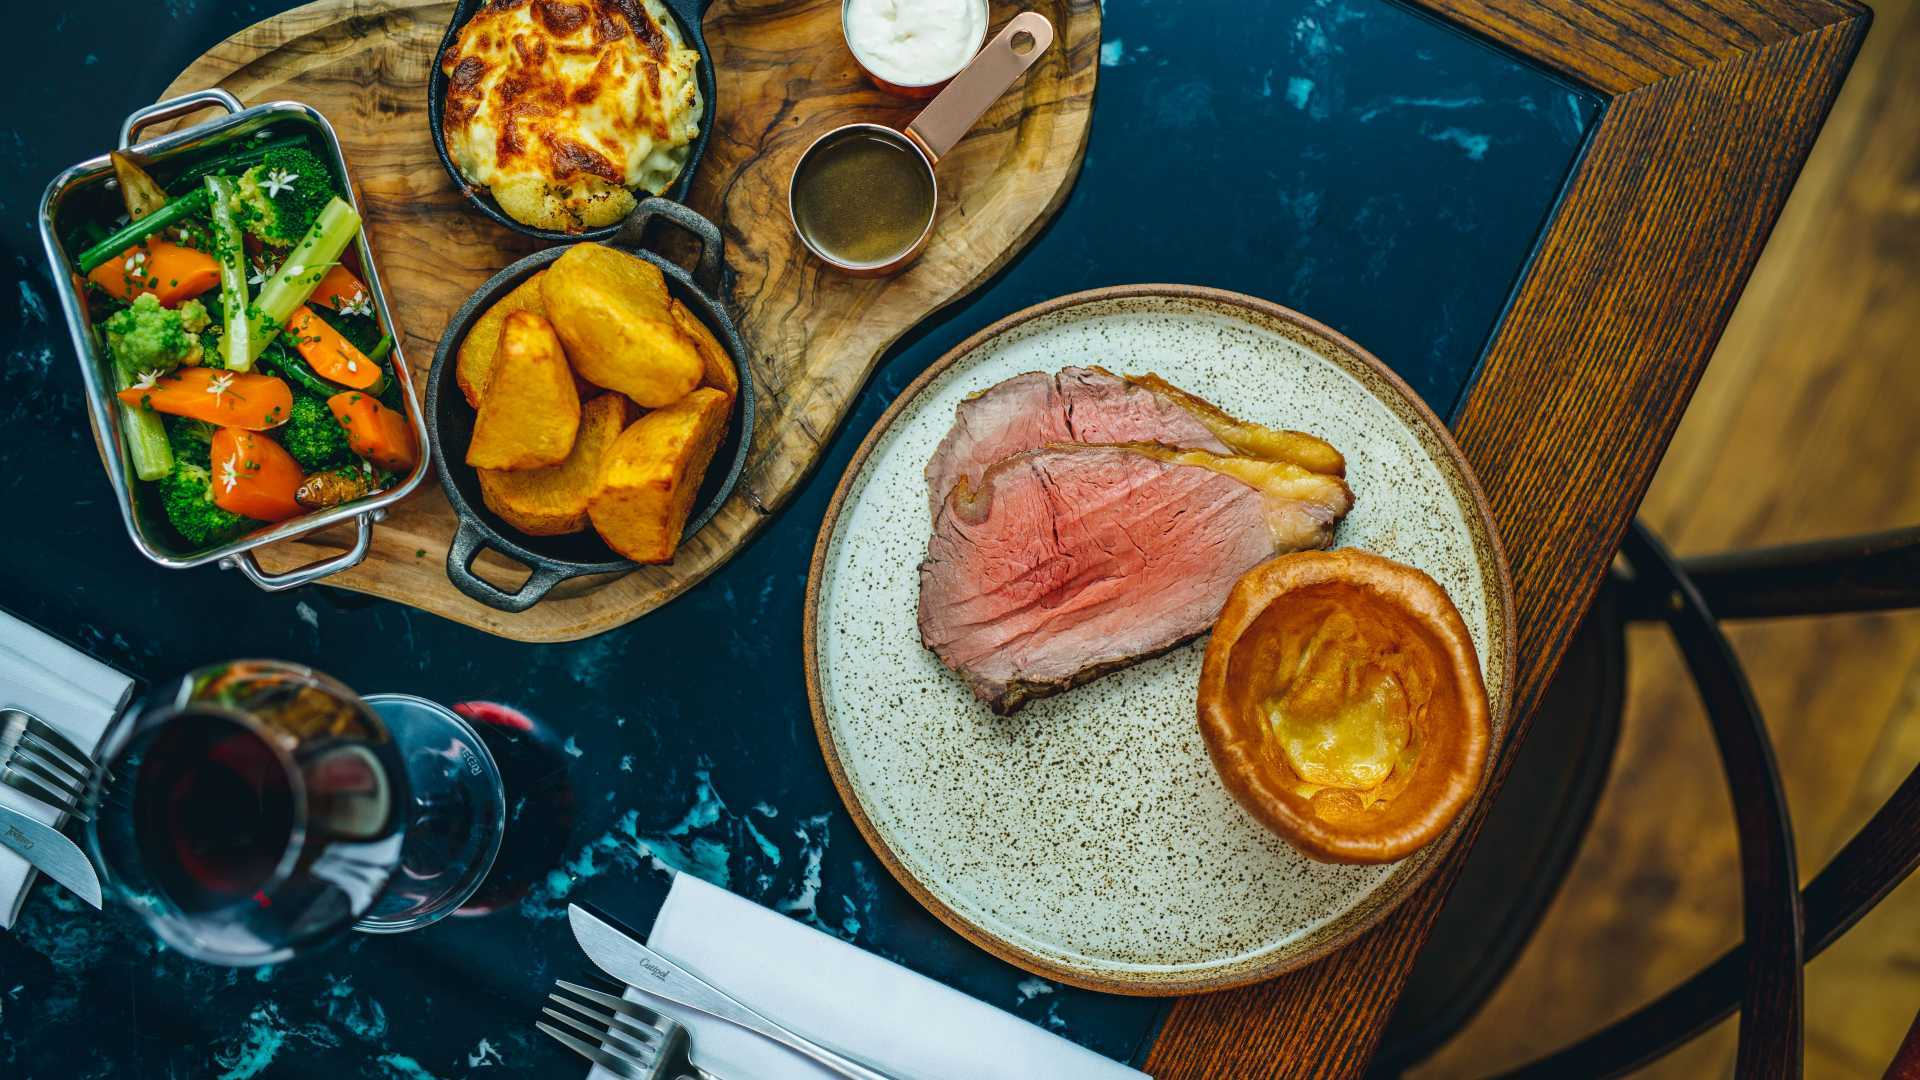 This is a photo of the Princess of Shoreditch's roast dinner of roast beef and sides.